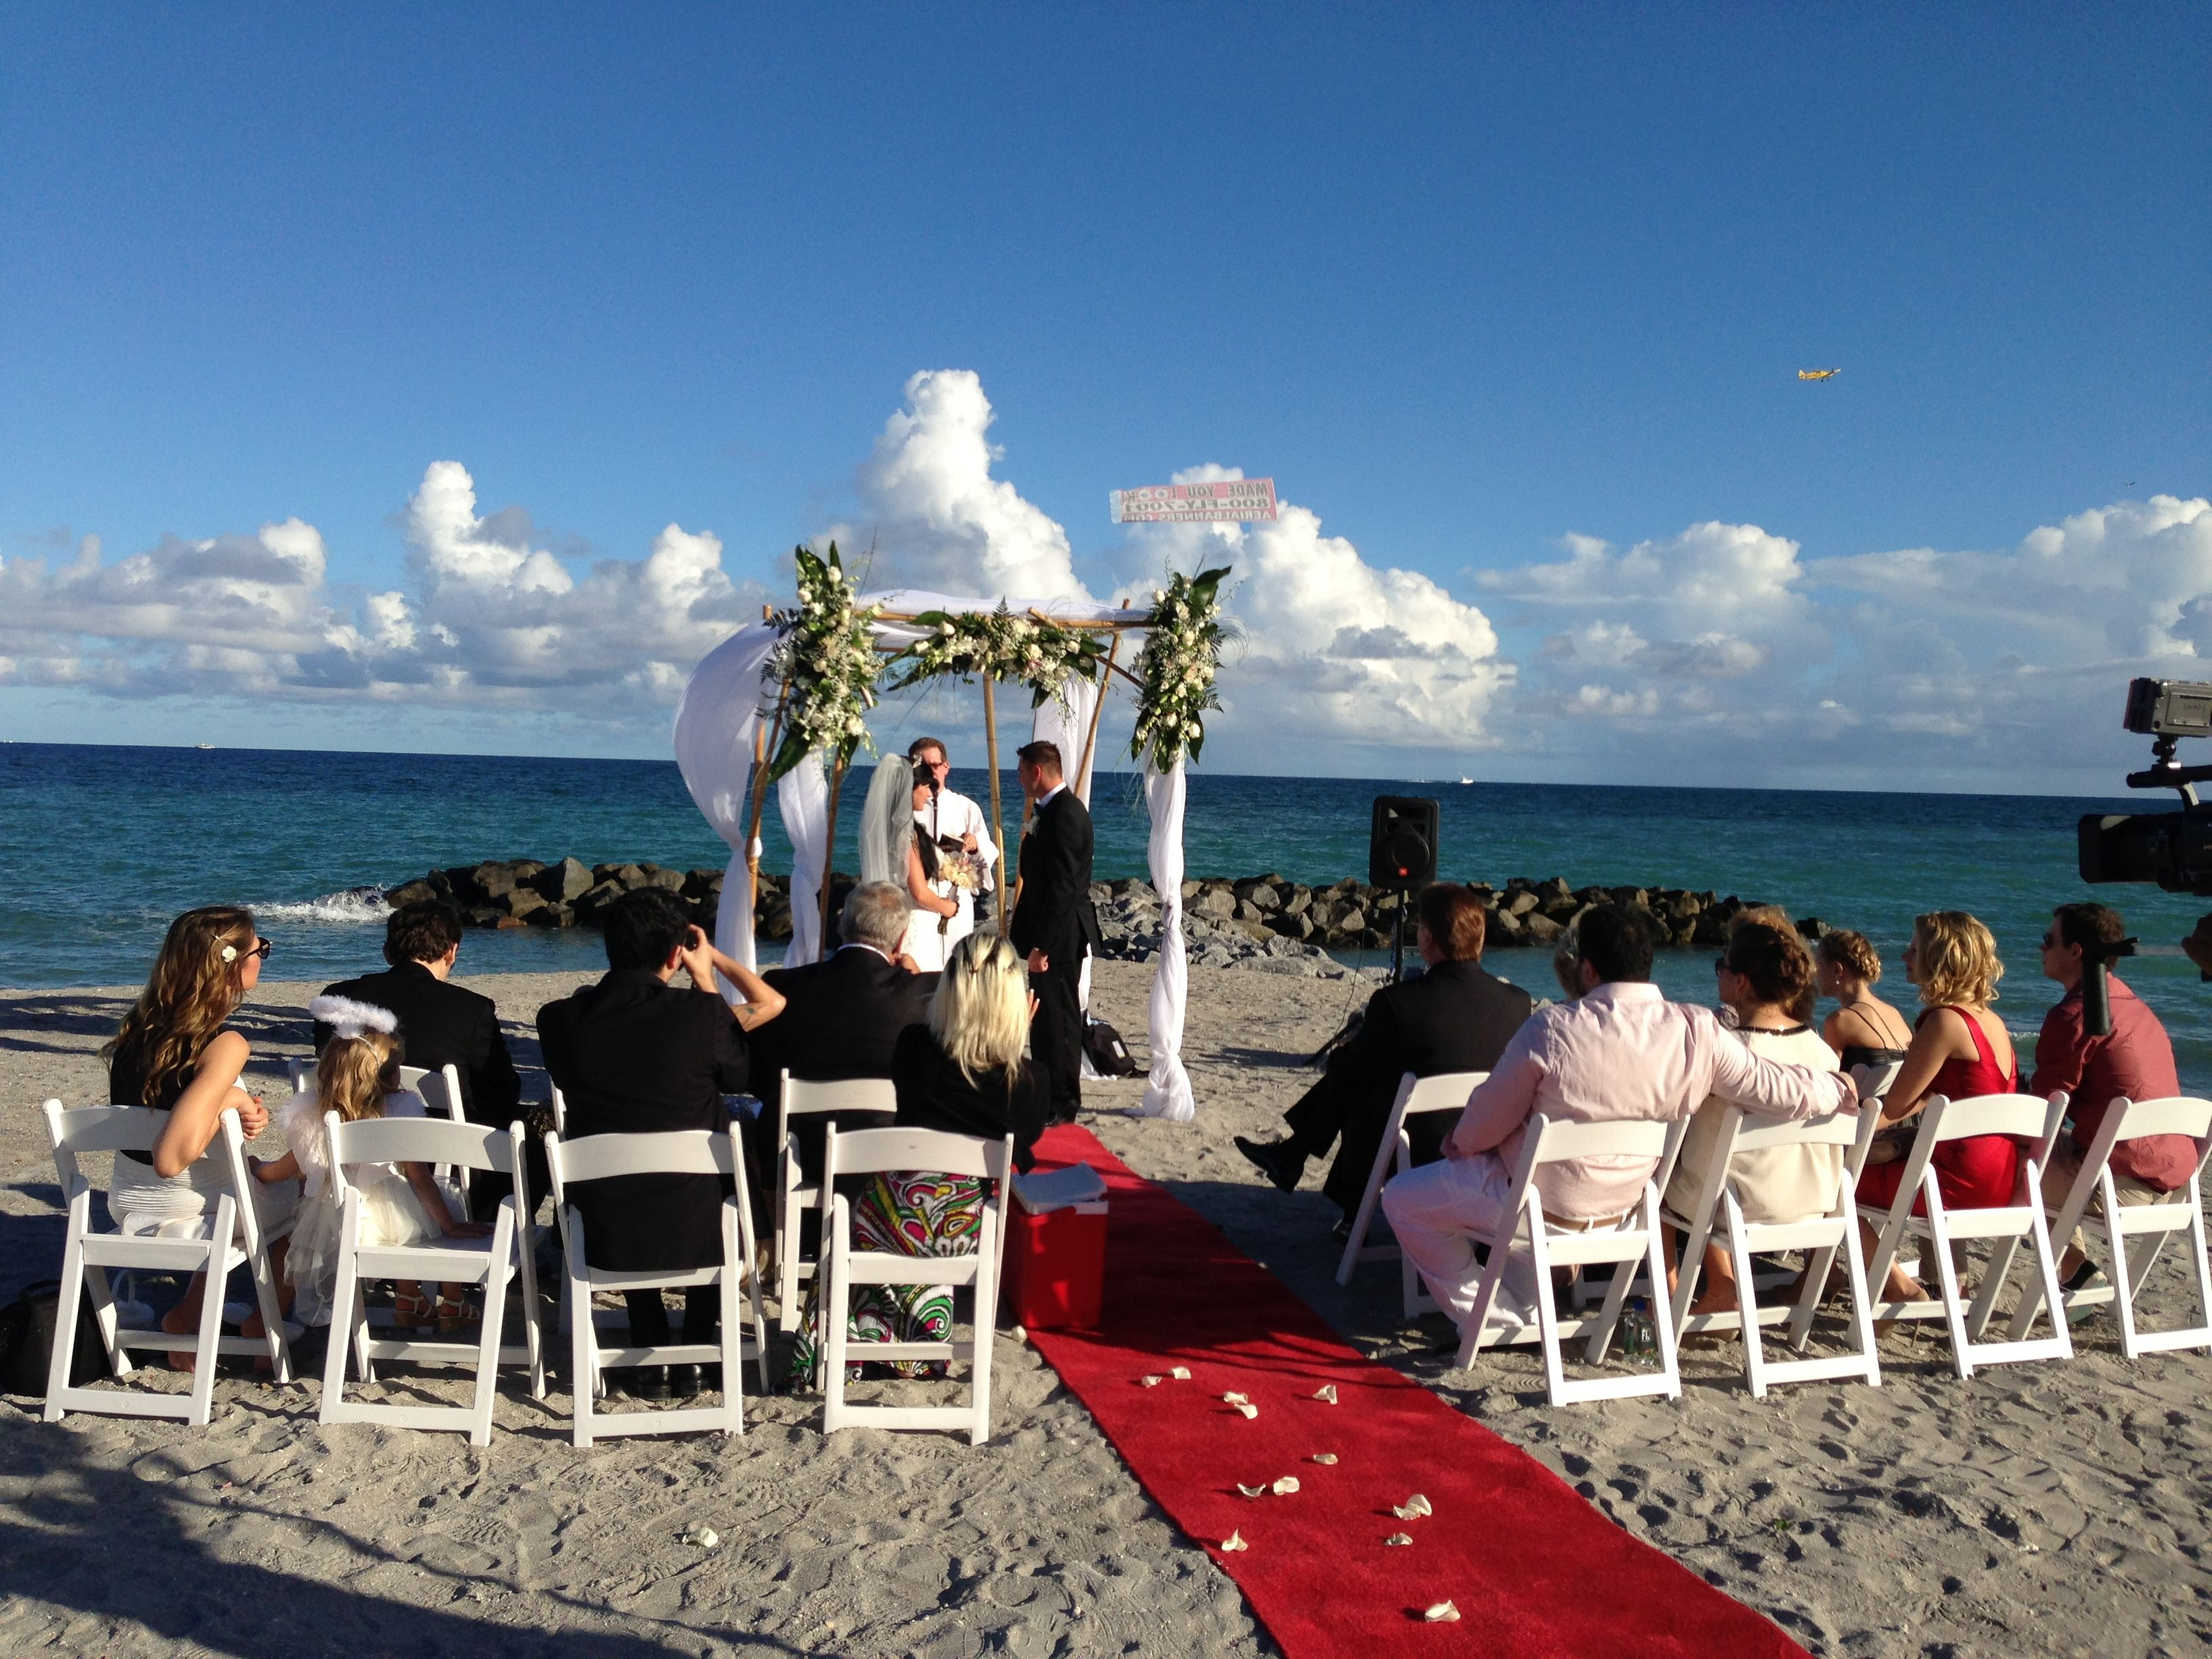 Beach wedding setup Red carpet runner Gazebo Drape Flower